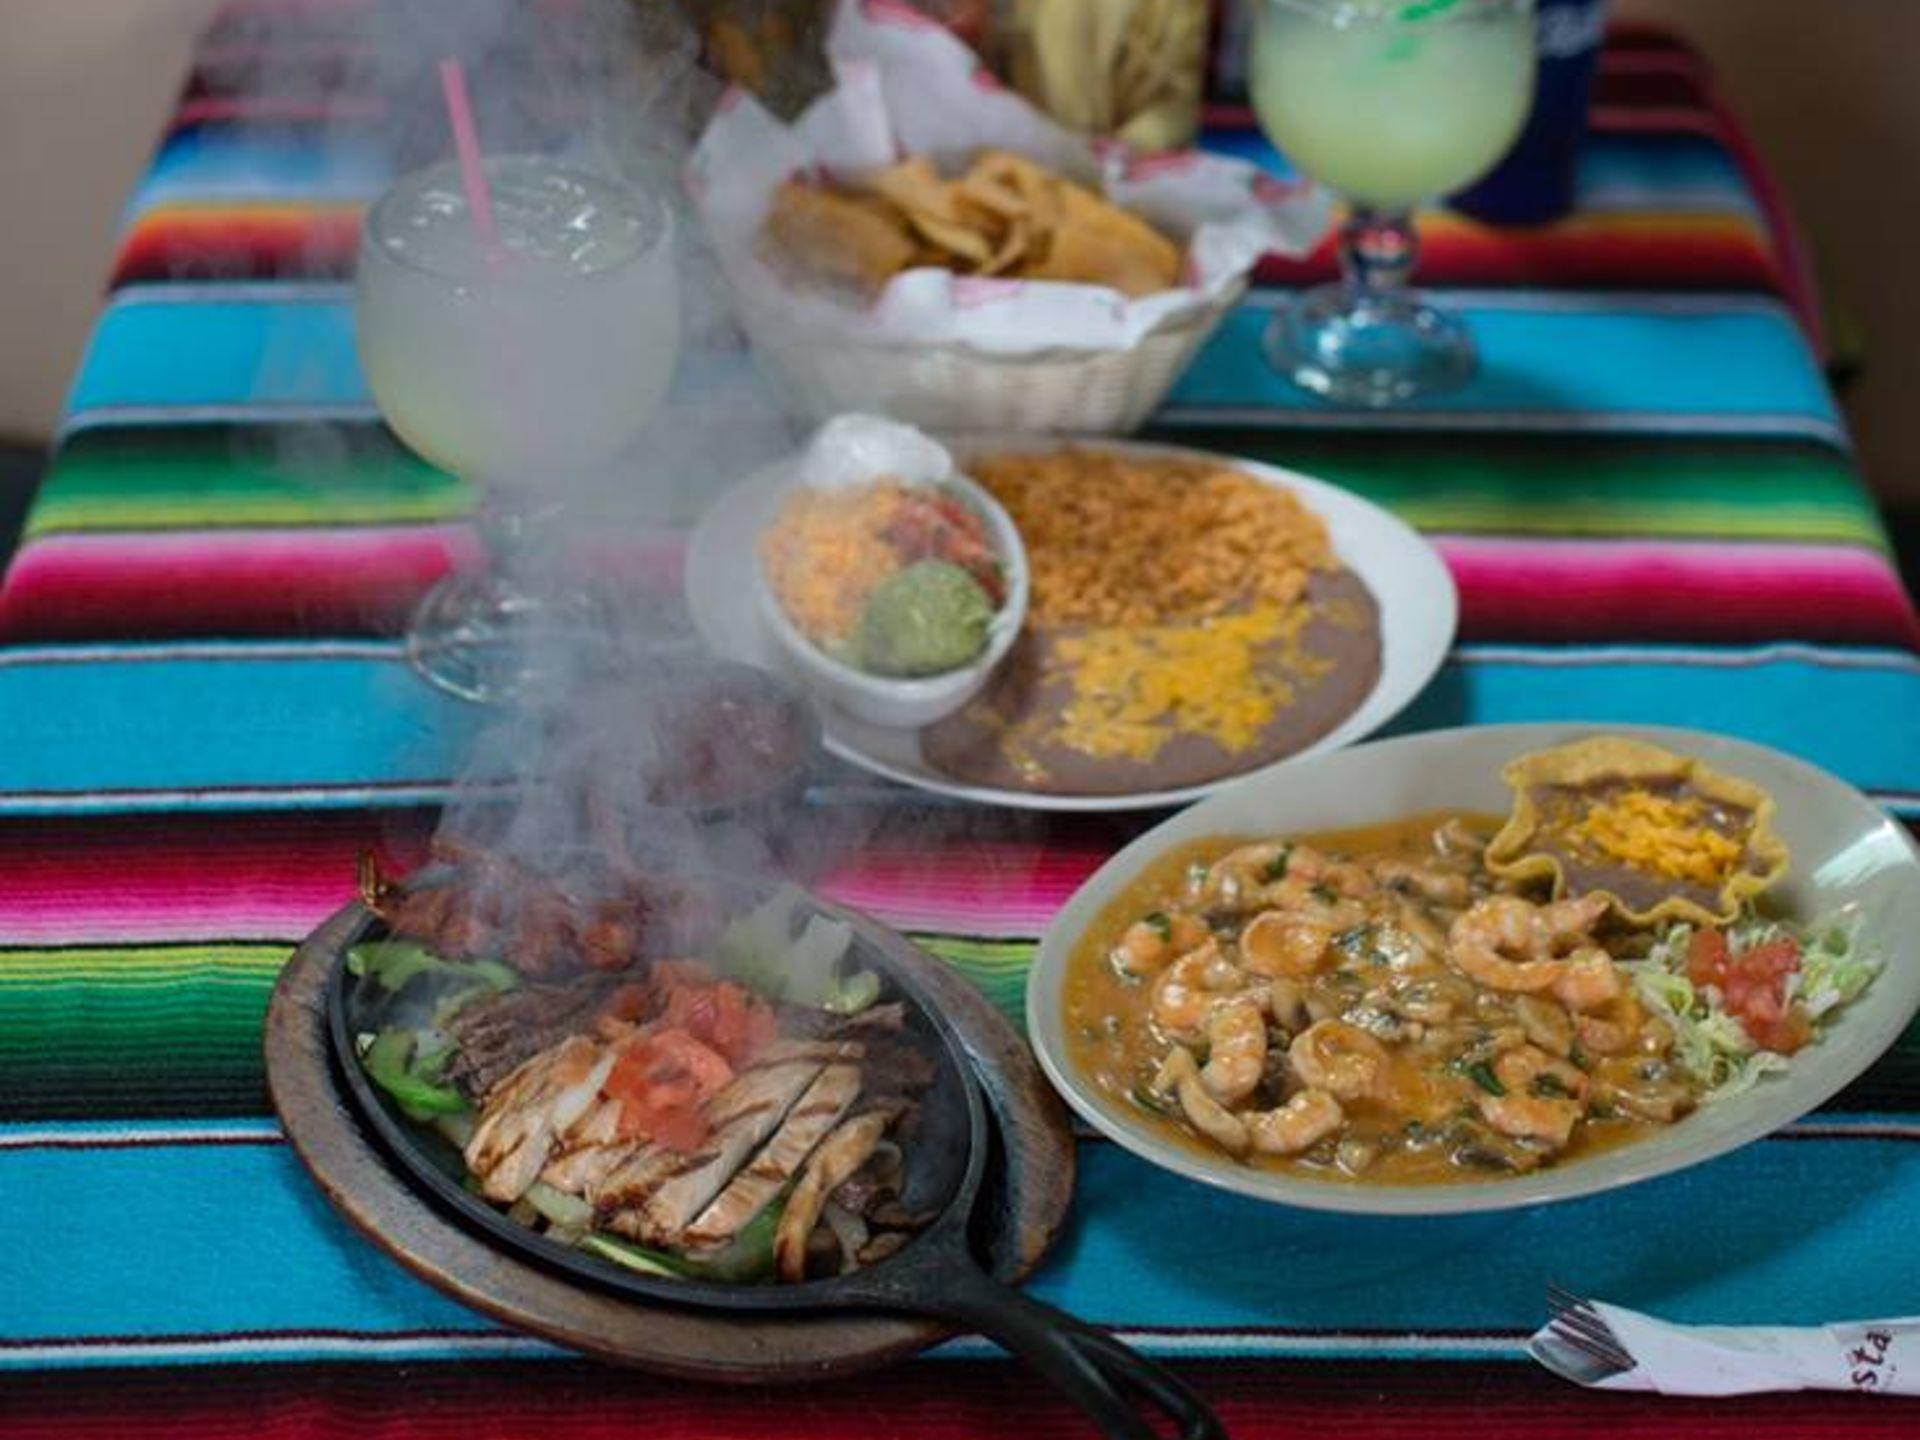 Multiple plates of assorted Mexican food on a table-top